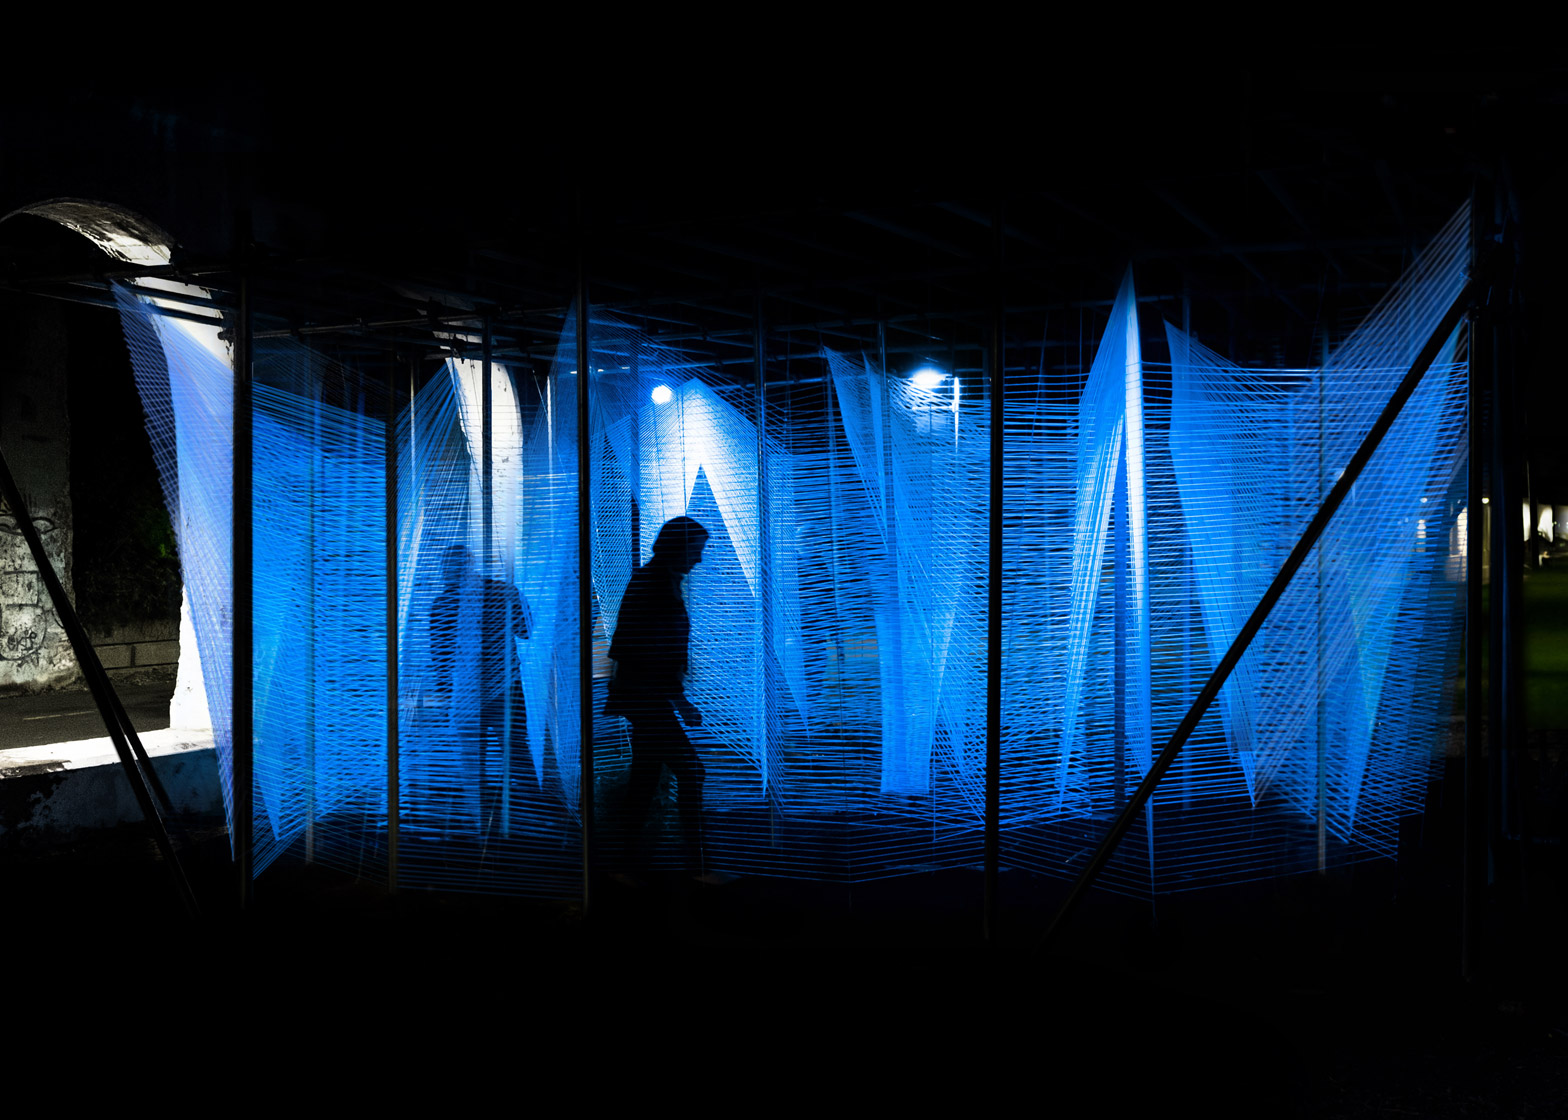 Lasermaze installatio in Detroit by George King Architects